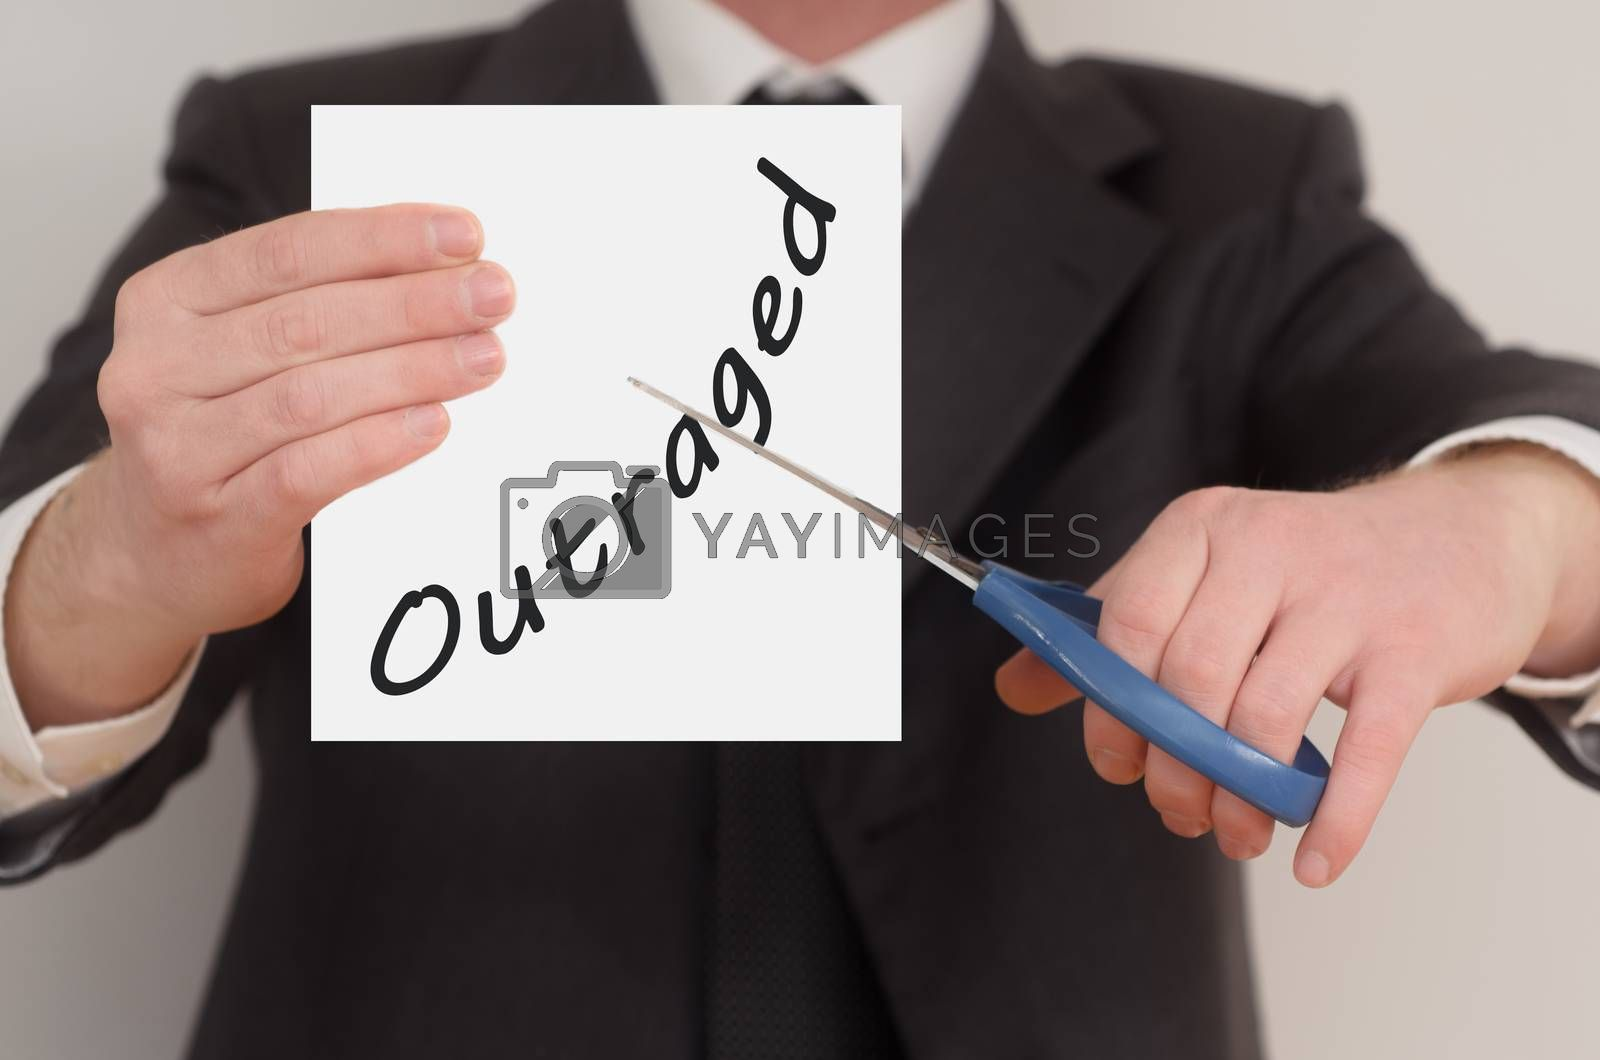 Outraged, man in suit cutting text on paper with scissors